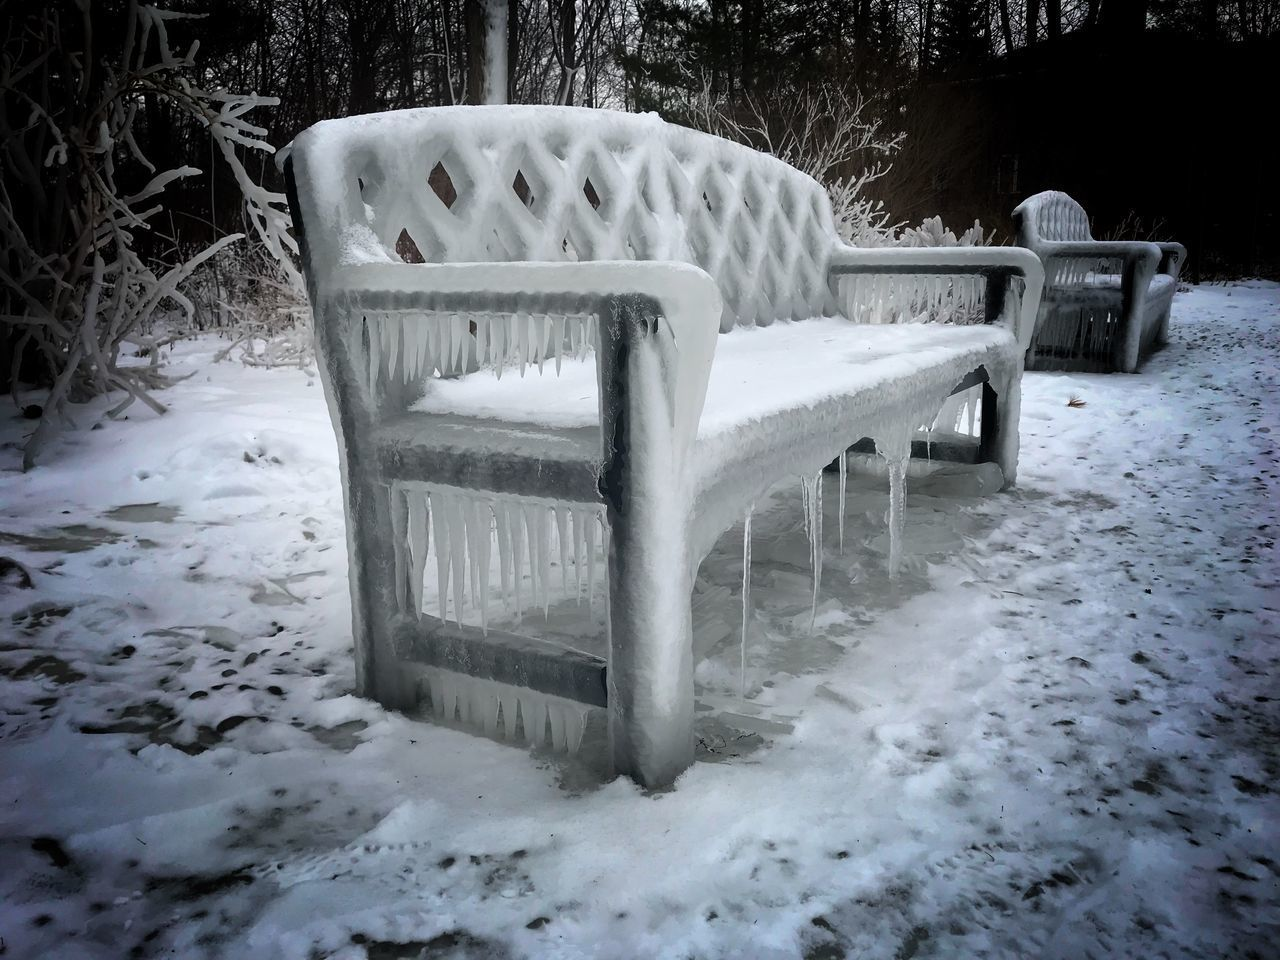 cold temperature, winter, snow, weather, chair, white color, nature, outdoors, no people, day, seat, landscape, beauty in nature, tree